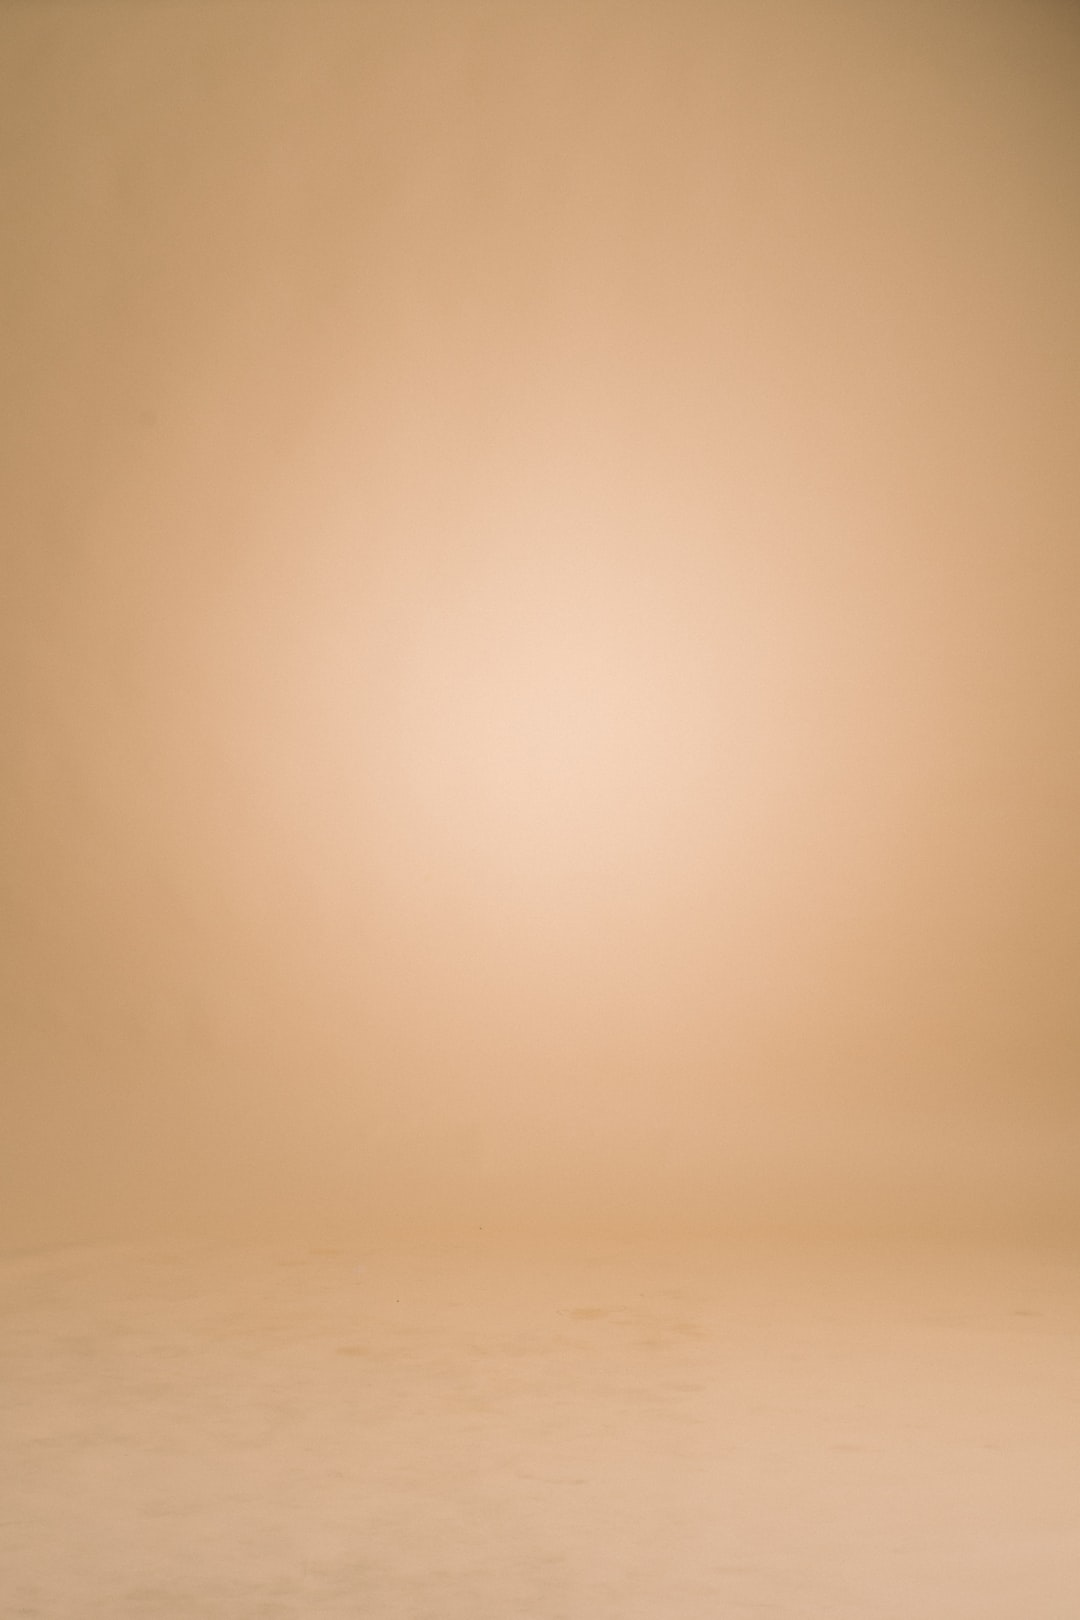 Cream seamless backdrop background plate Shot by Chase Wilson http://agroism.com